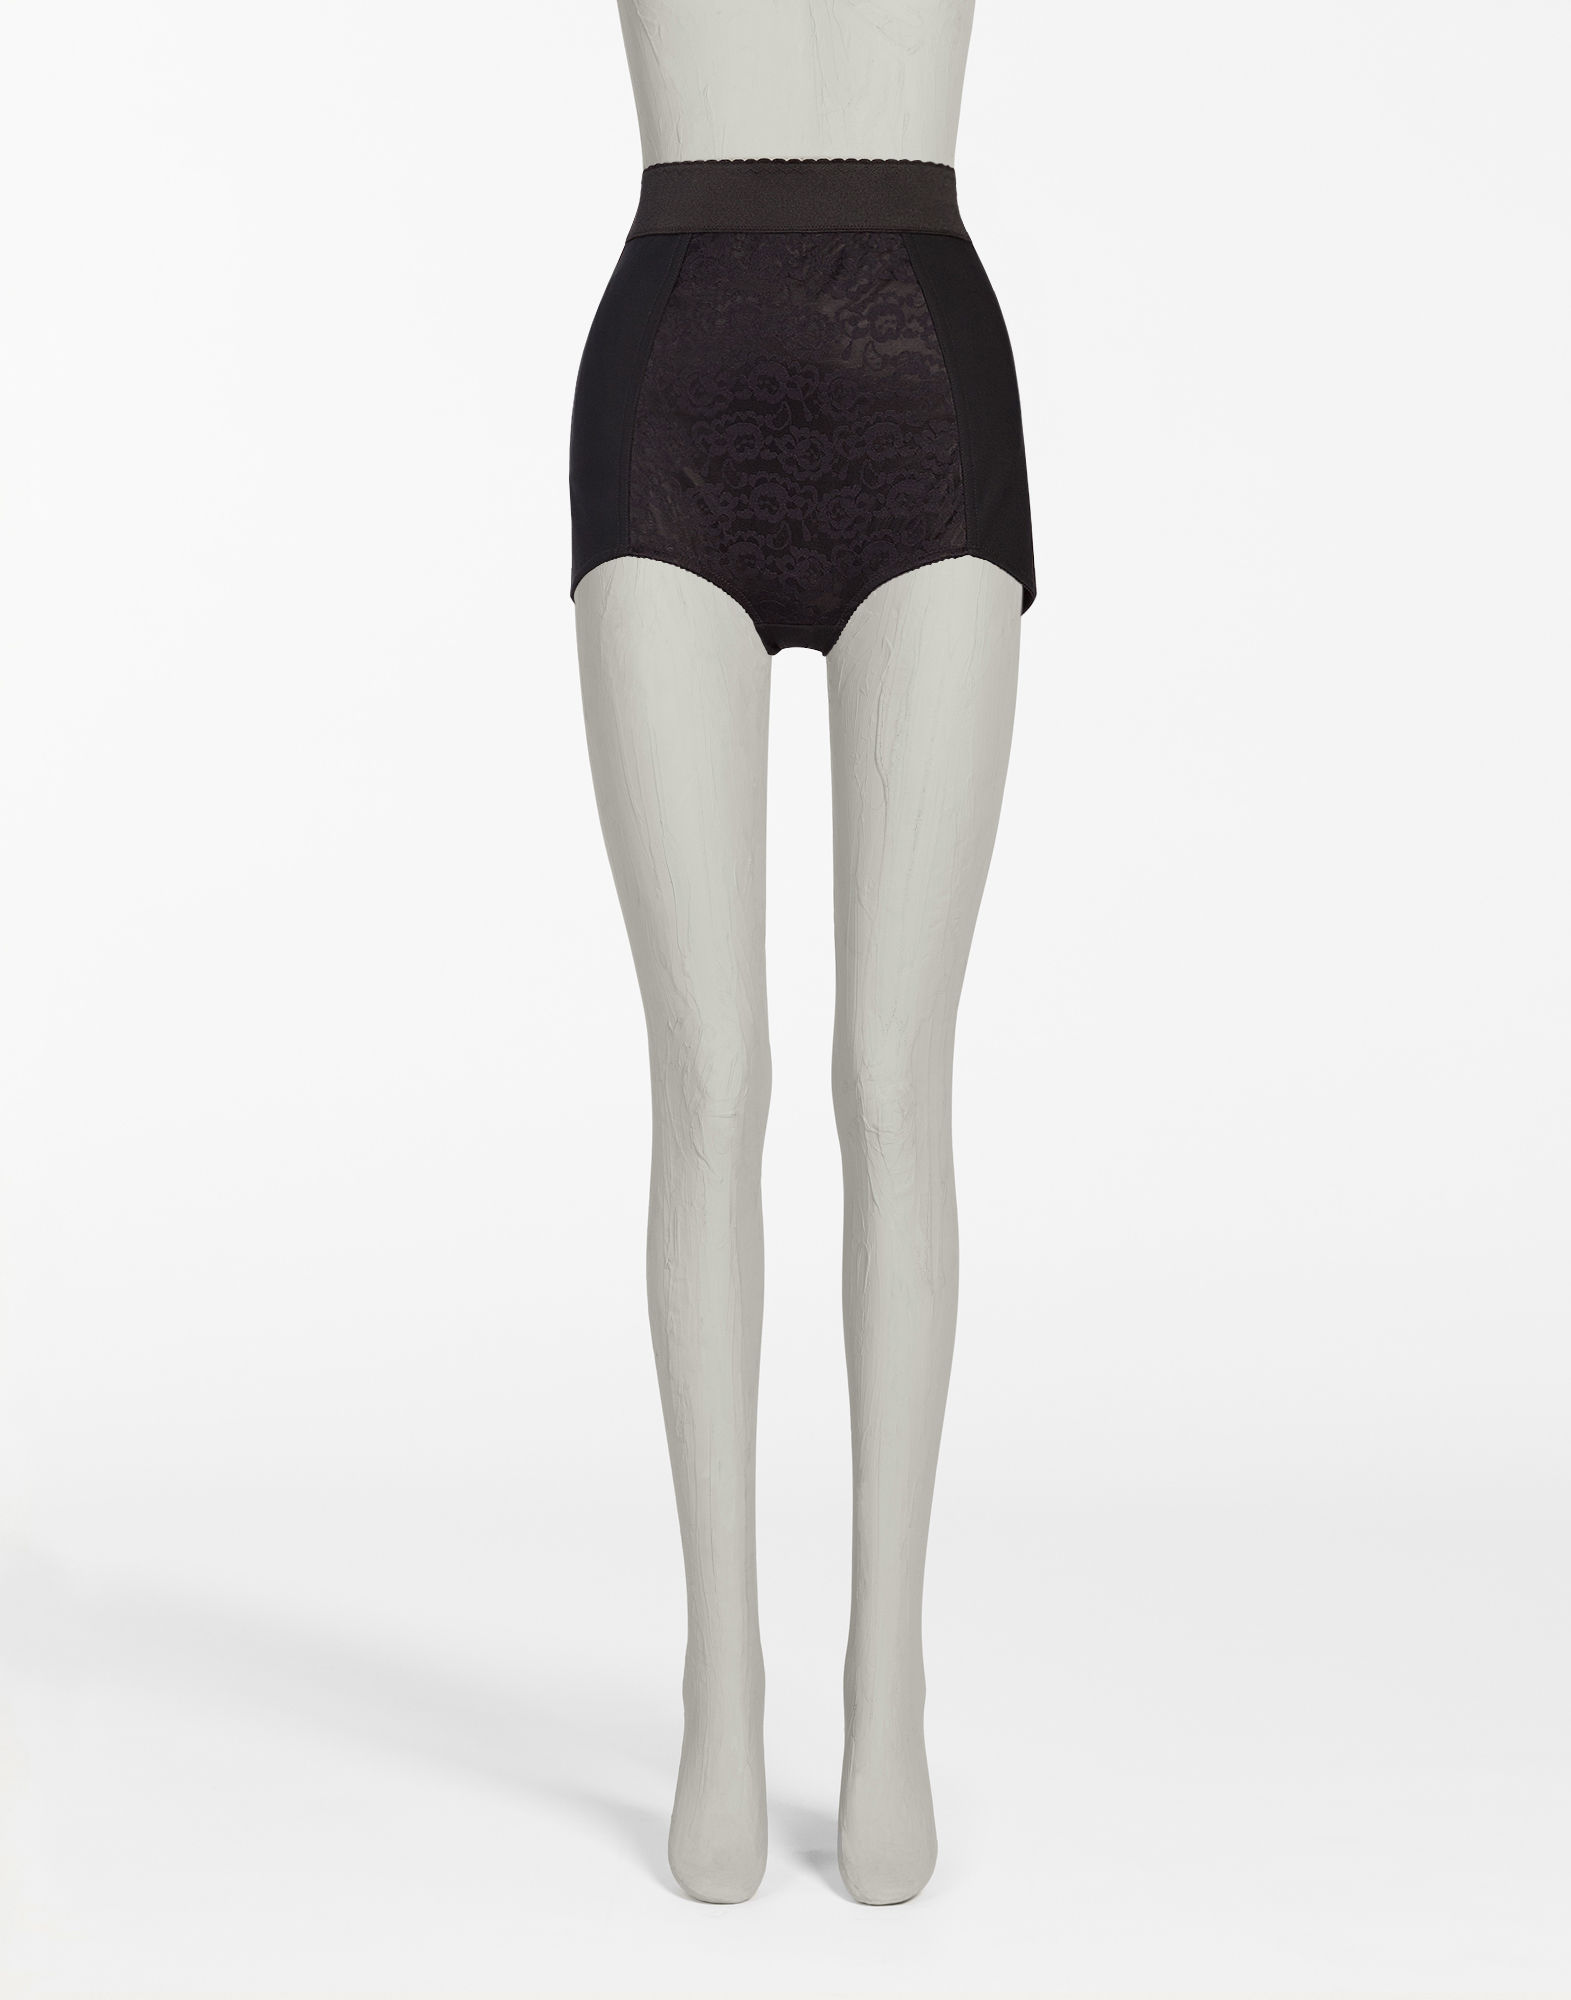 Dolce & Gabbana Shaper Panties With Lace Details, Black